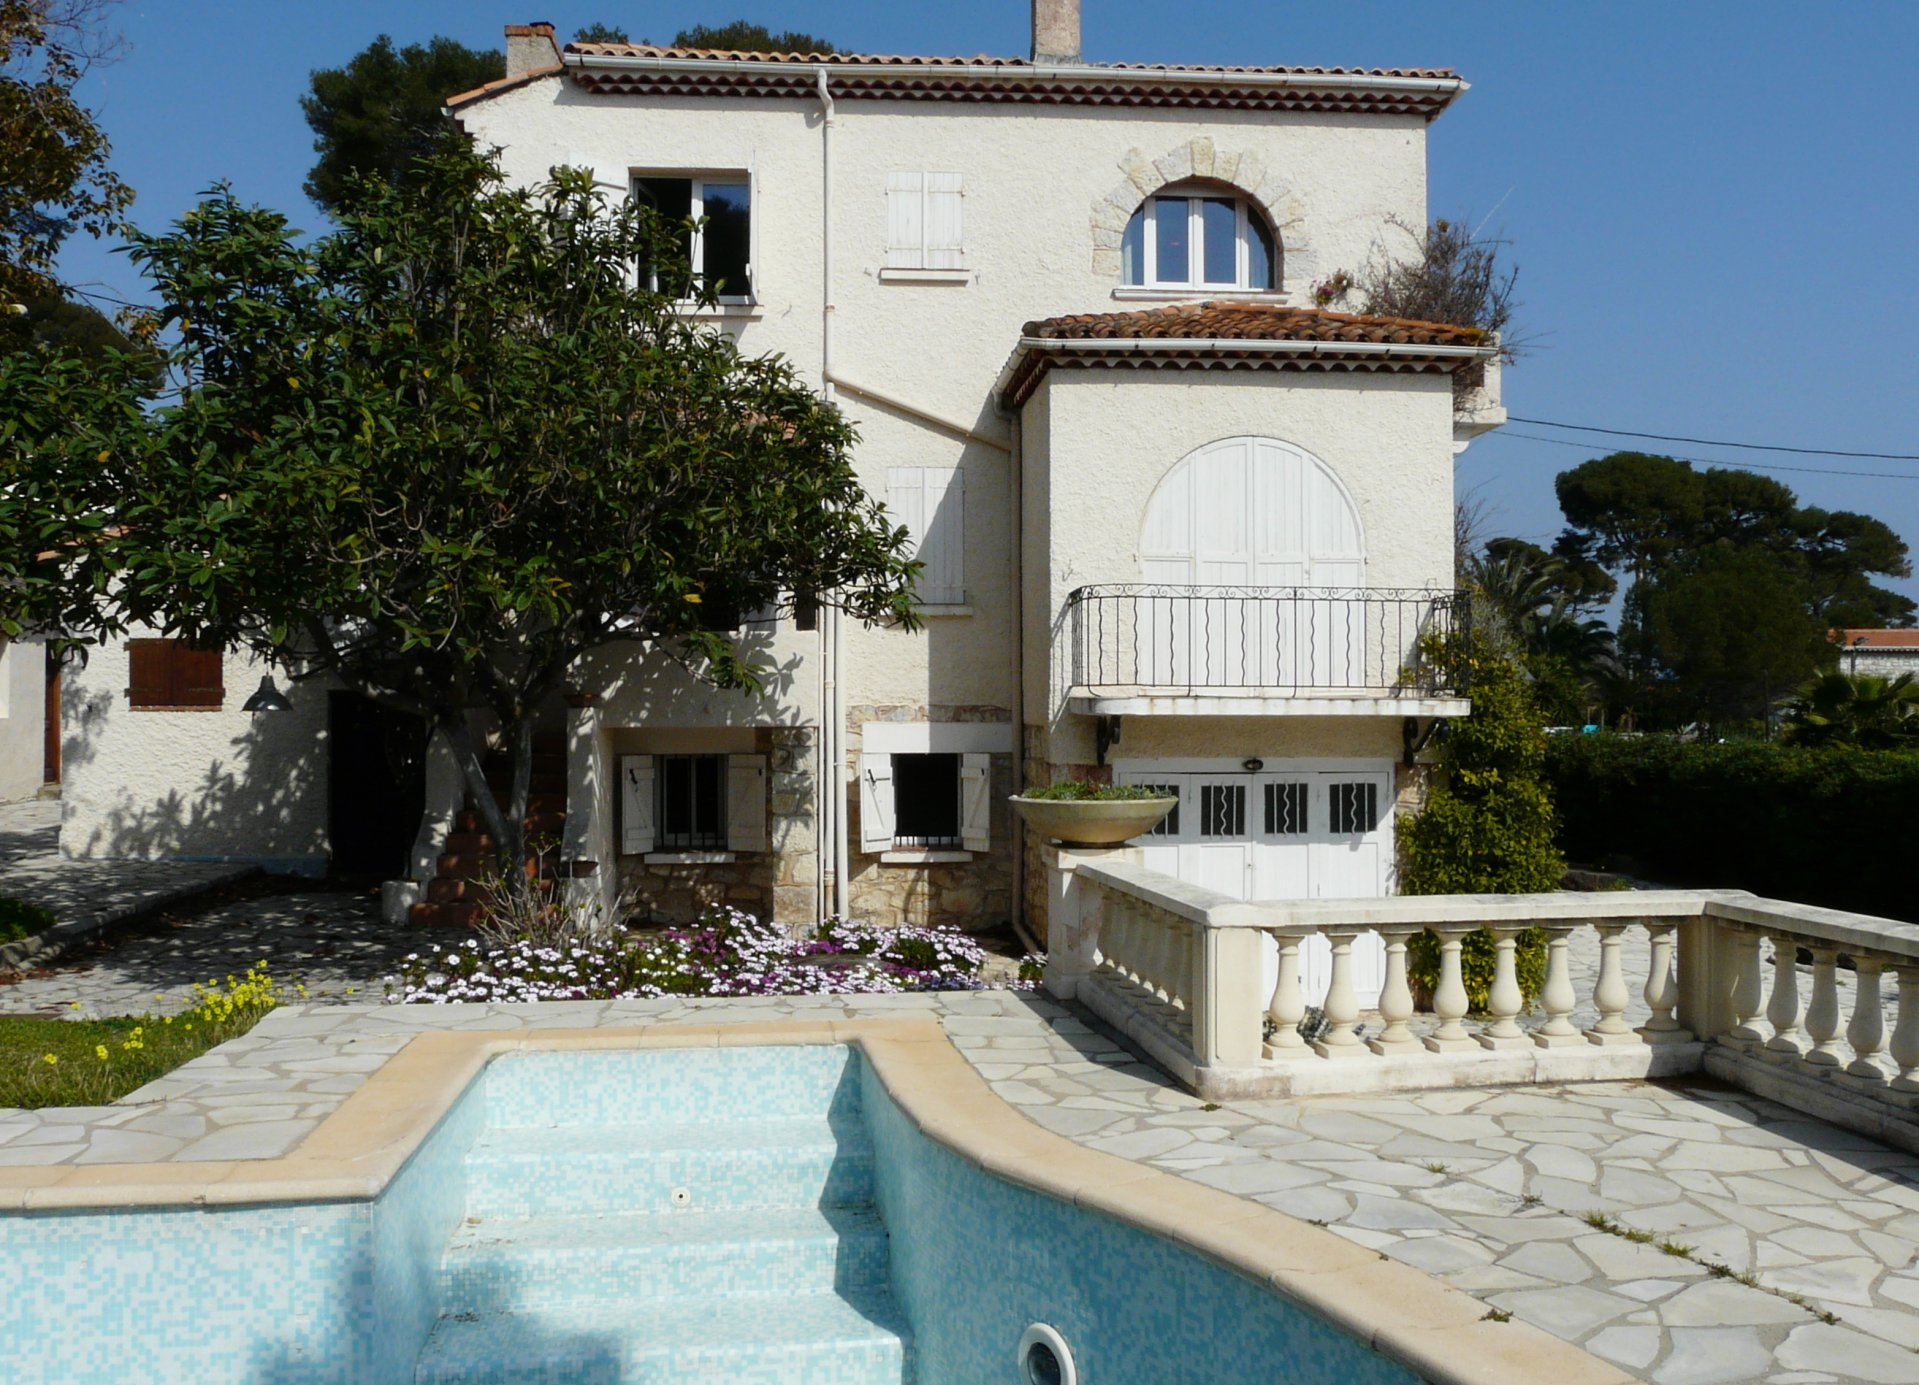 COMFORTABLE VILLA FOR A FAMILLY AT 25 METERS FROM THE SEA